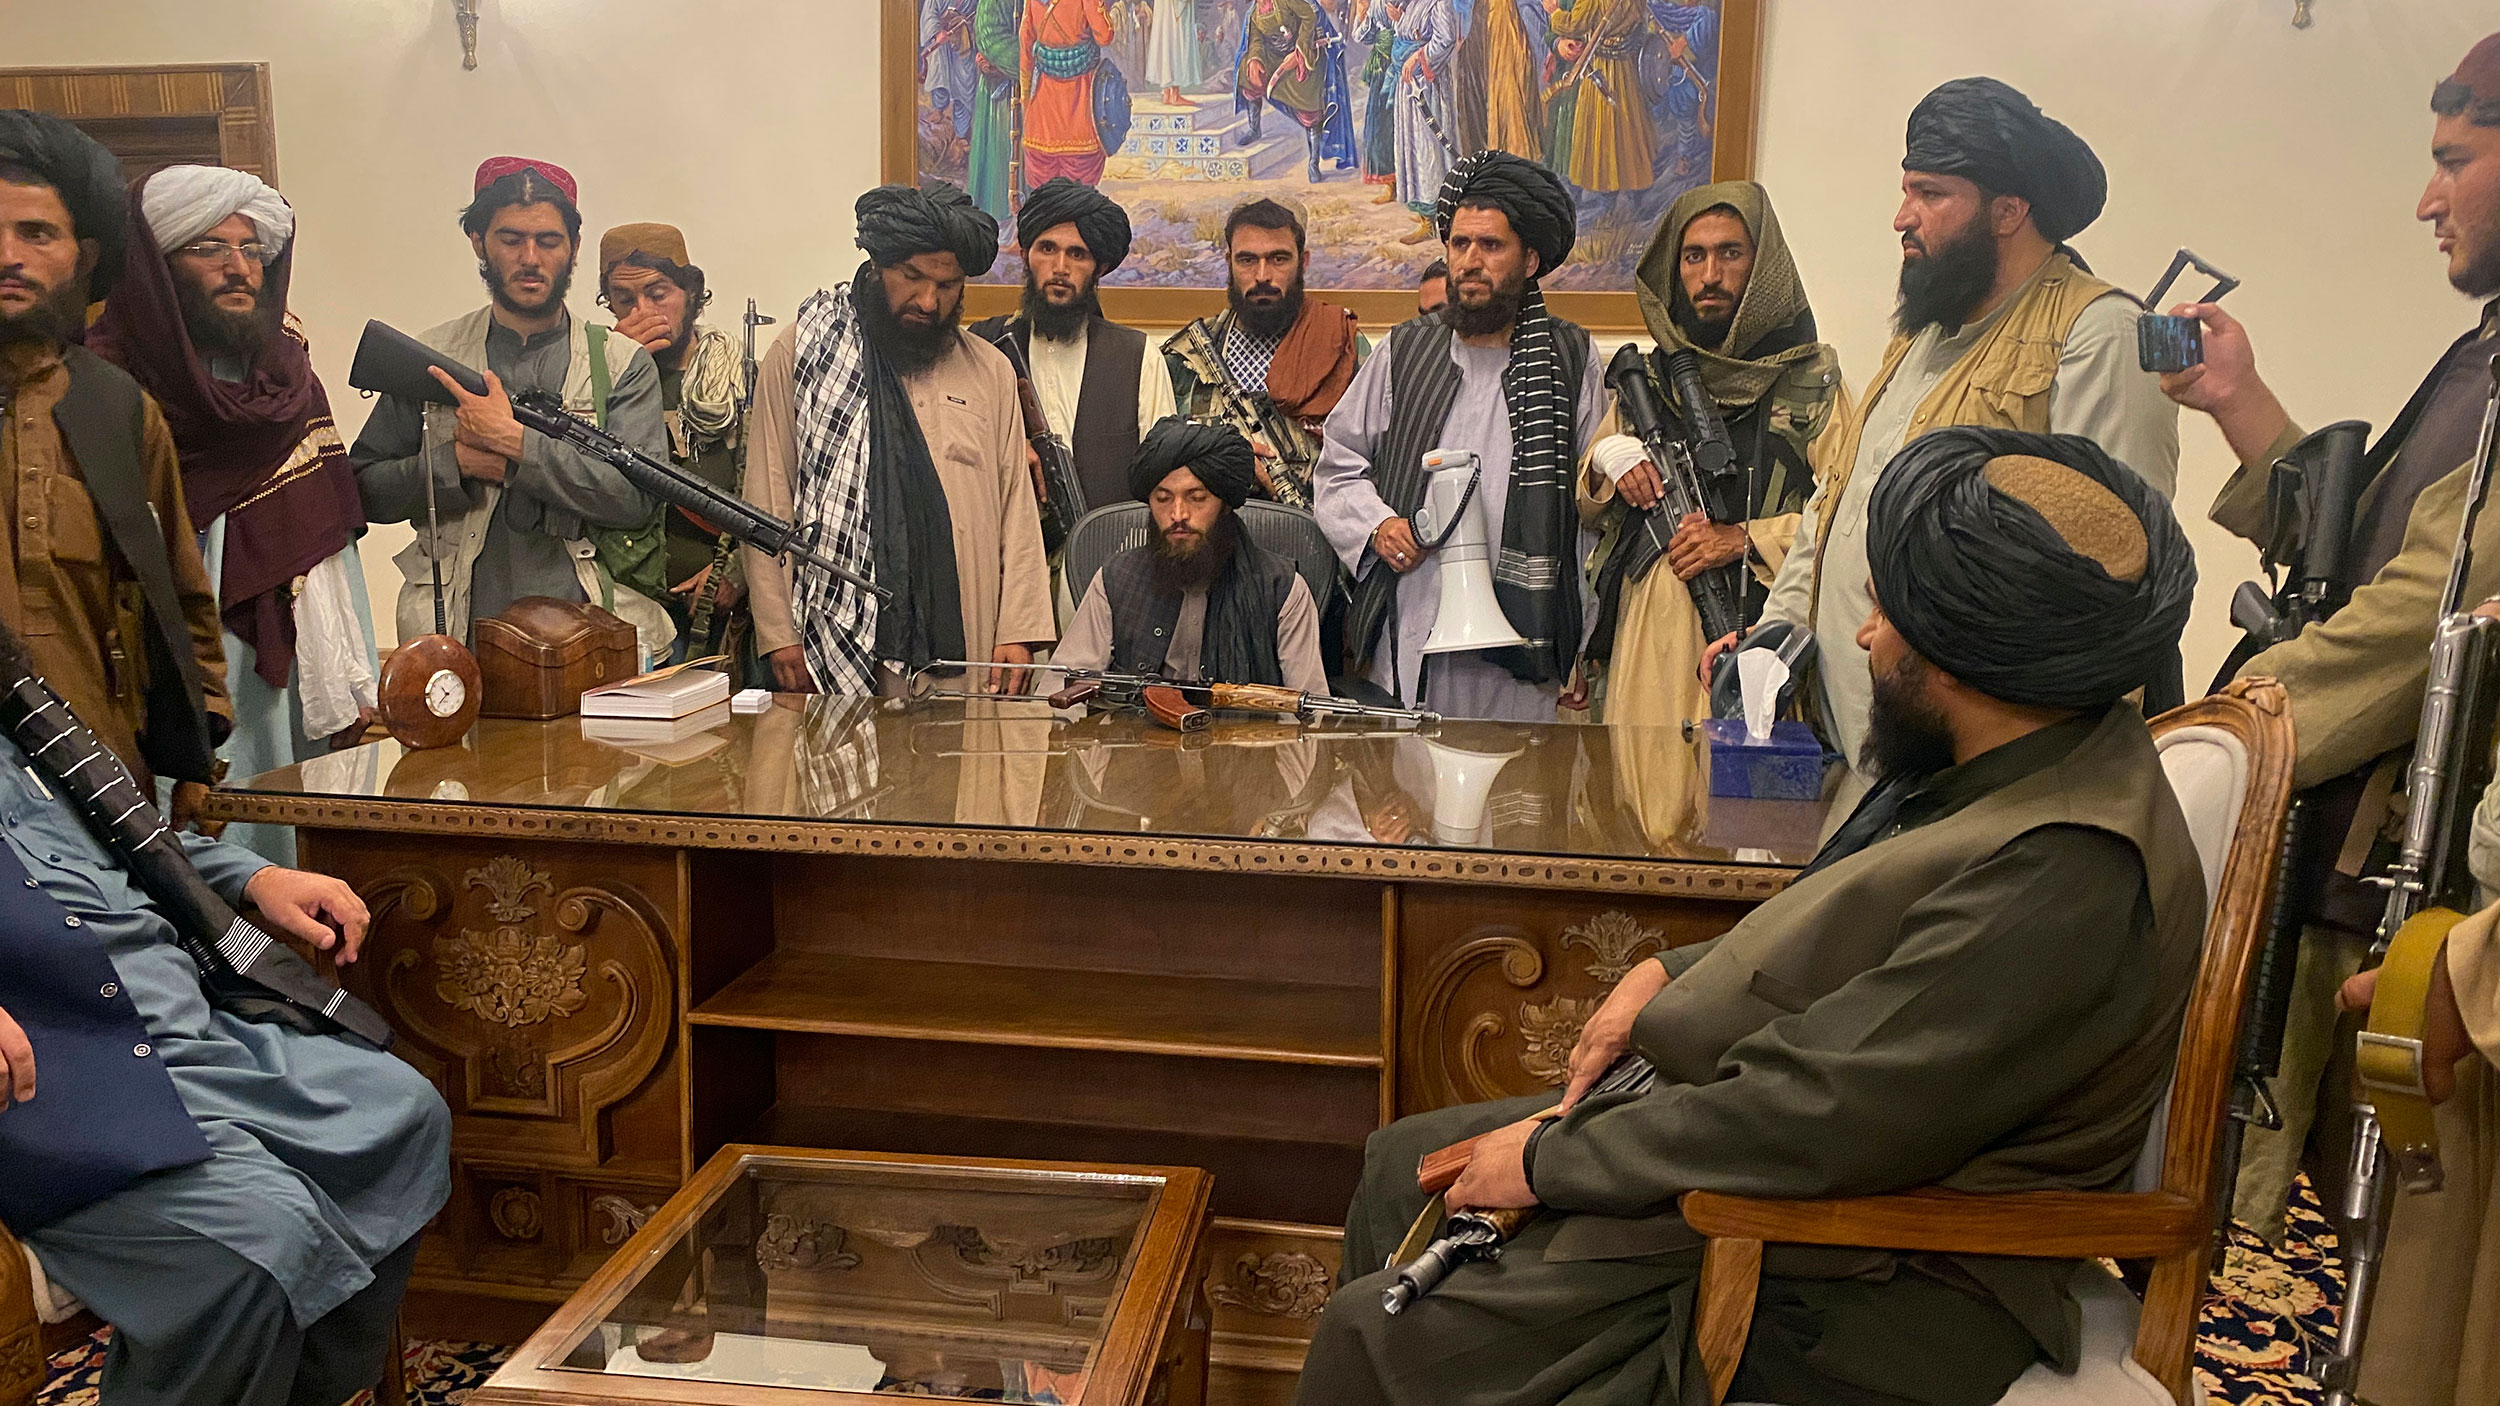 Taliban fighters sit inside the presidential palace in Kabul, Afghanistan, on Sunday, August 15.